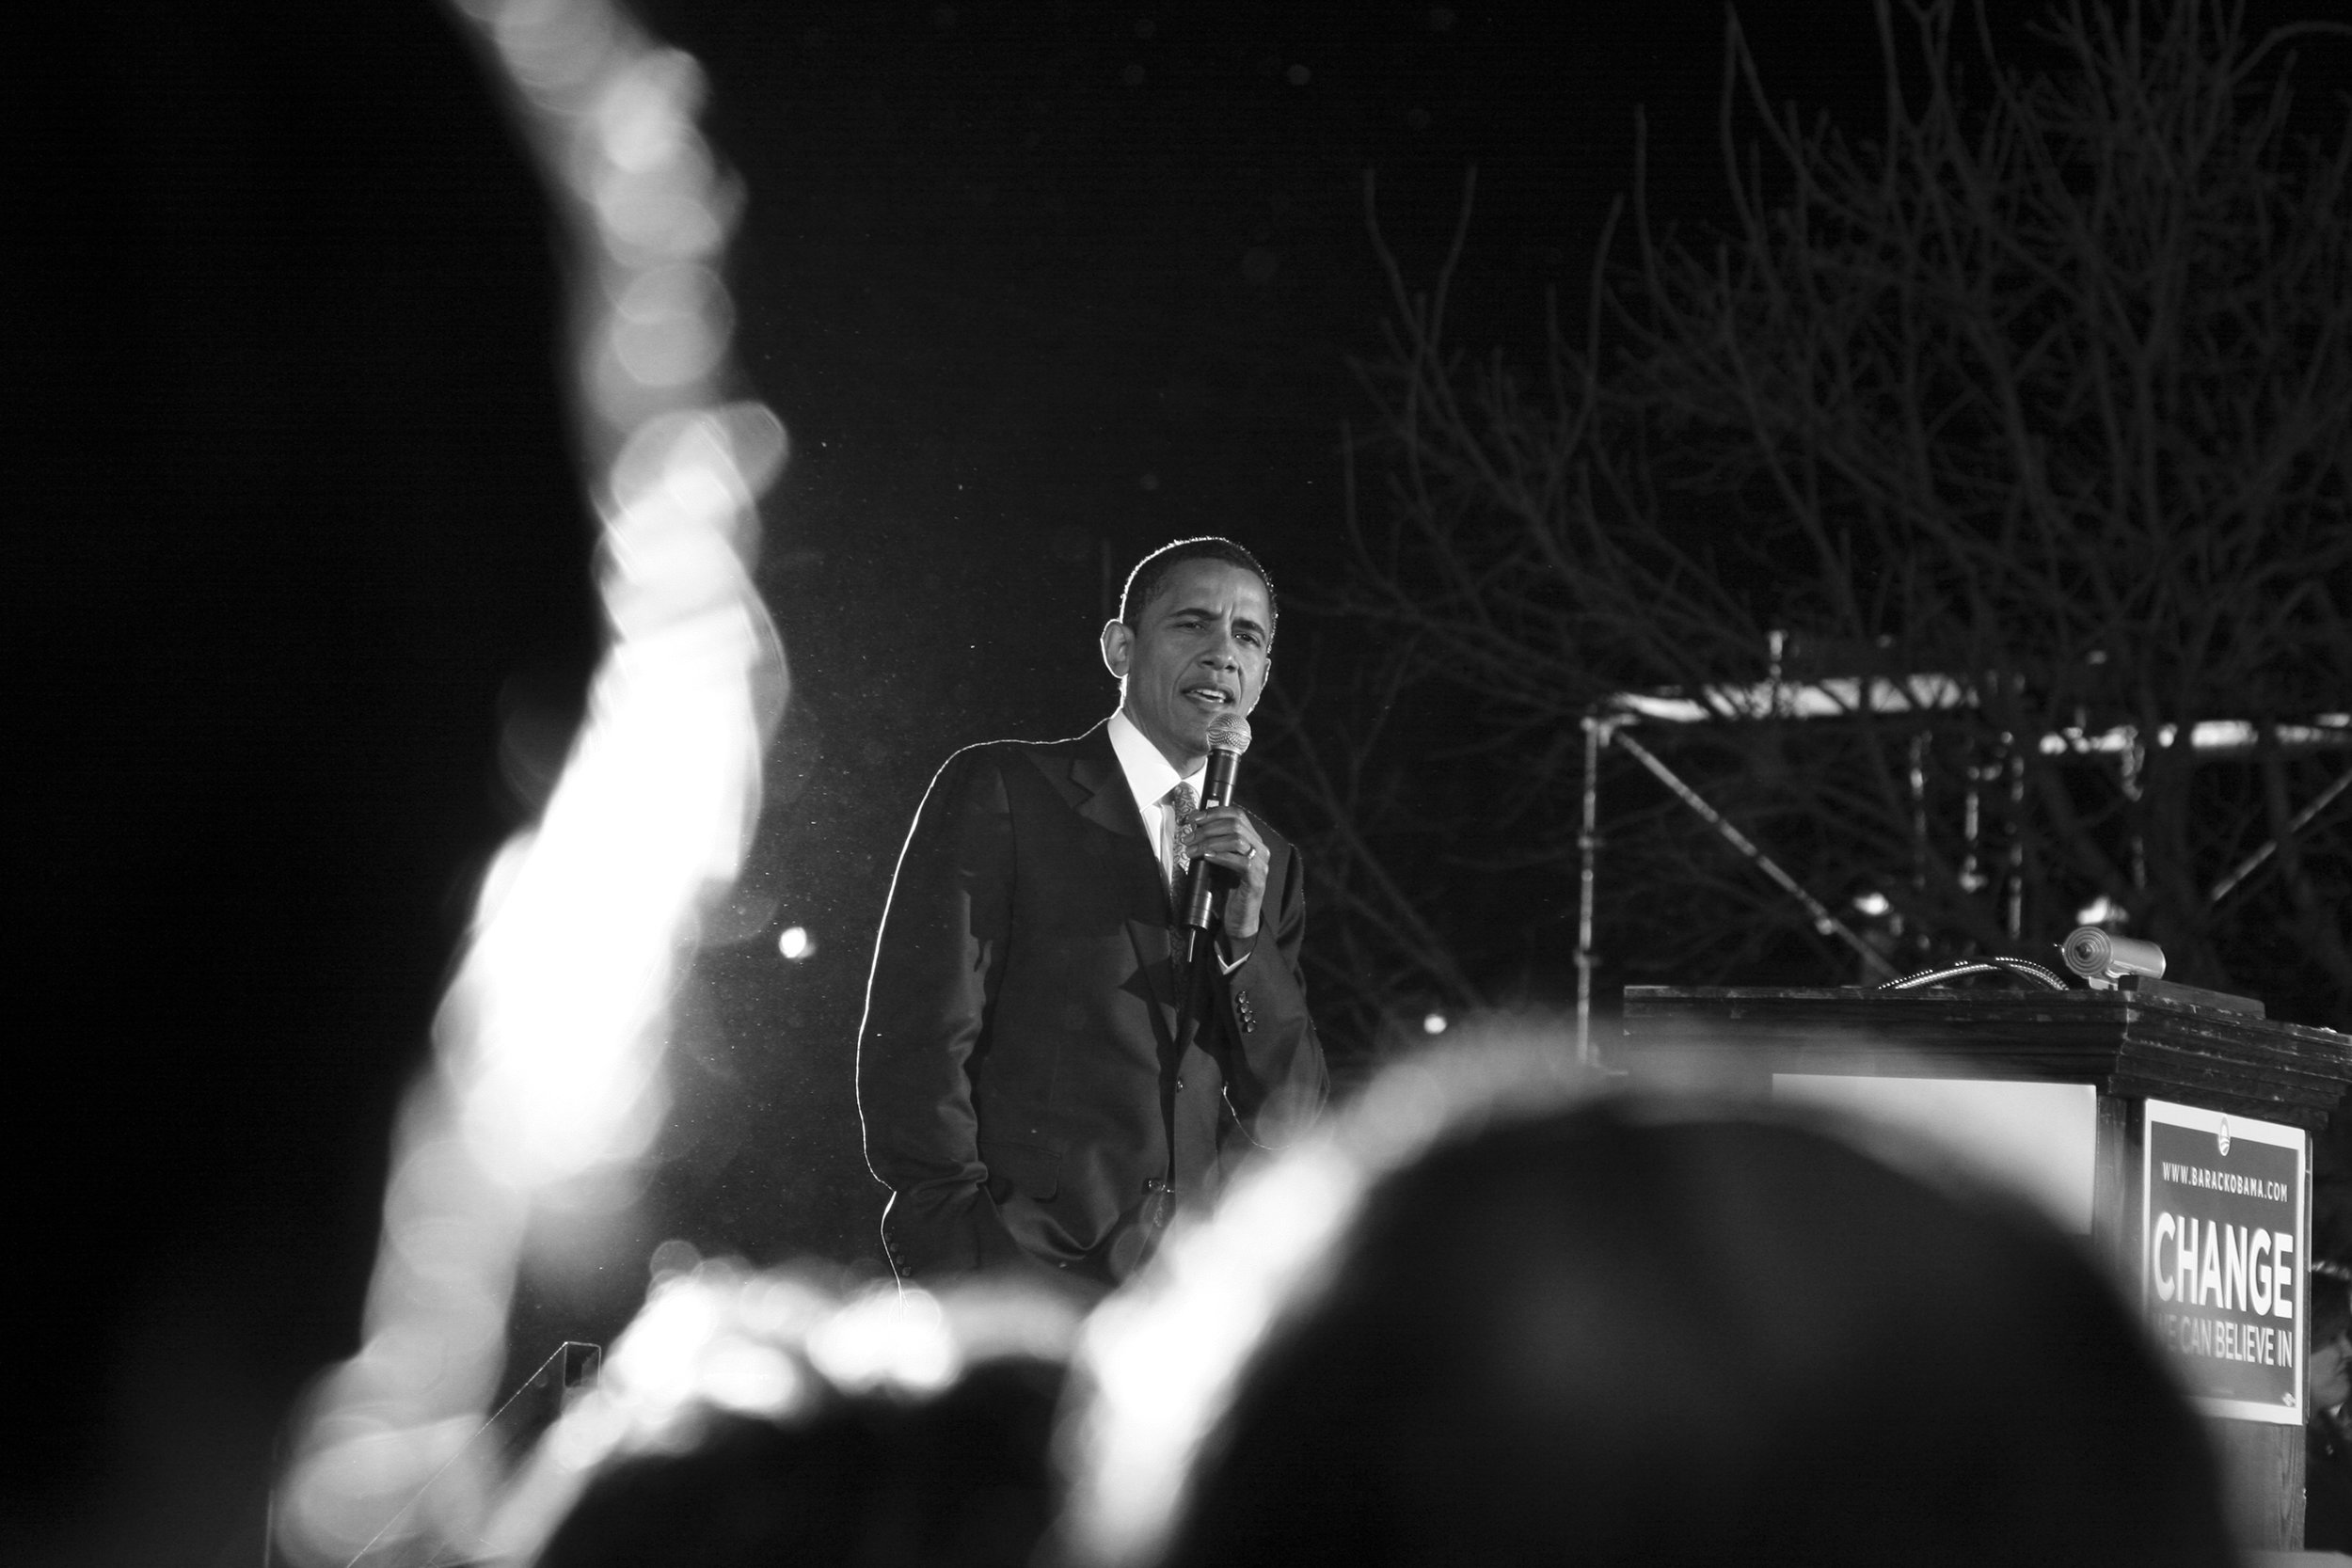 Barack Obama speaks to students at Texas State University while on the campaign trail during the 2008 Presidential Election.  San Marcos, TX 2008